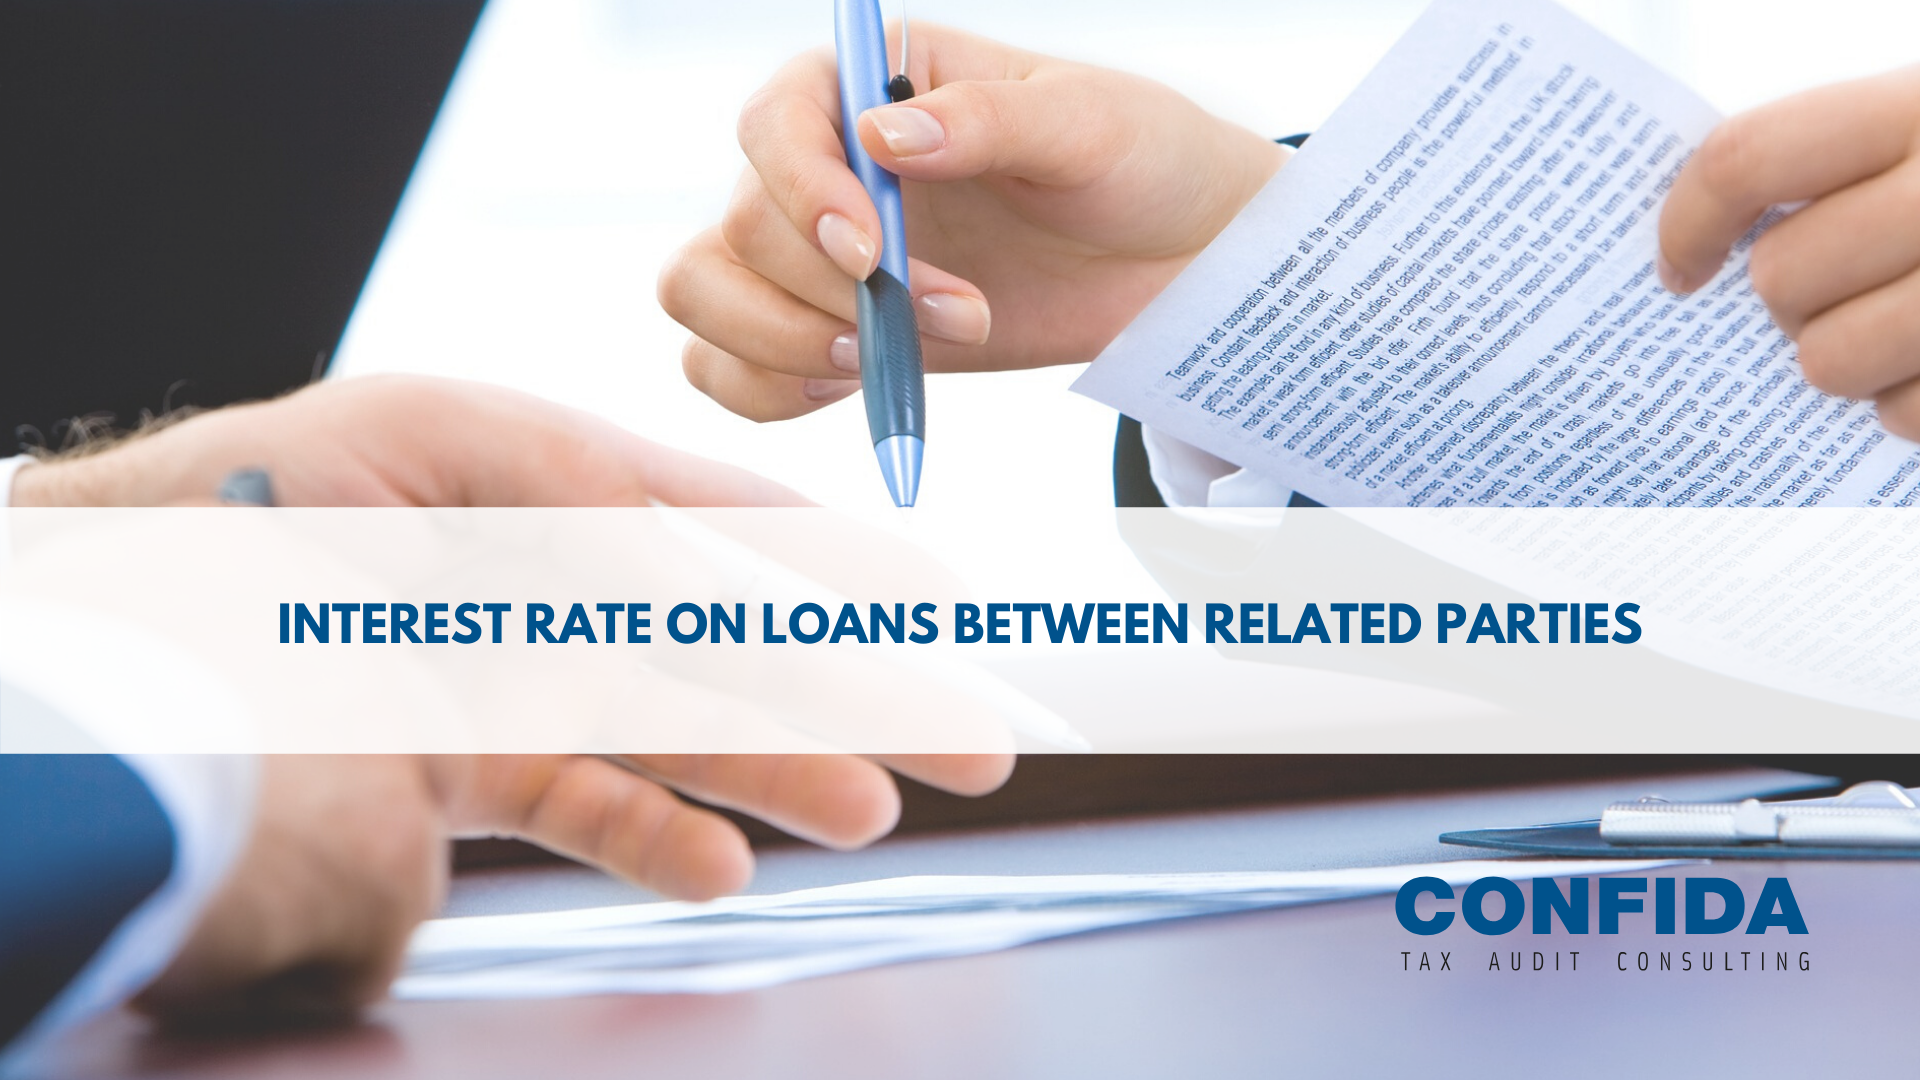 Interest rate on loans between related parties